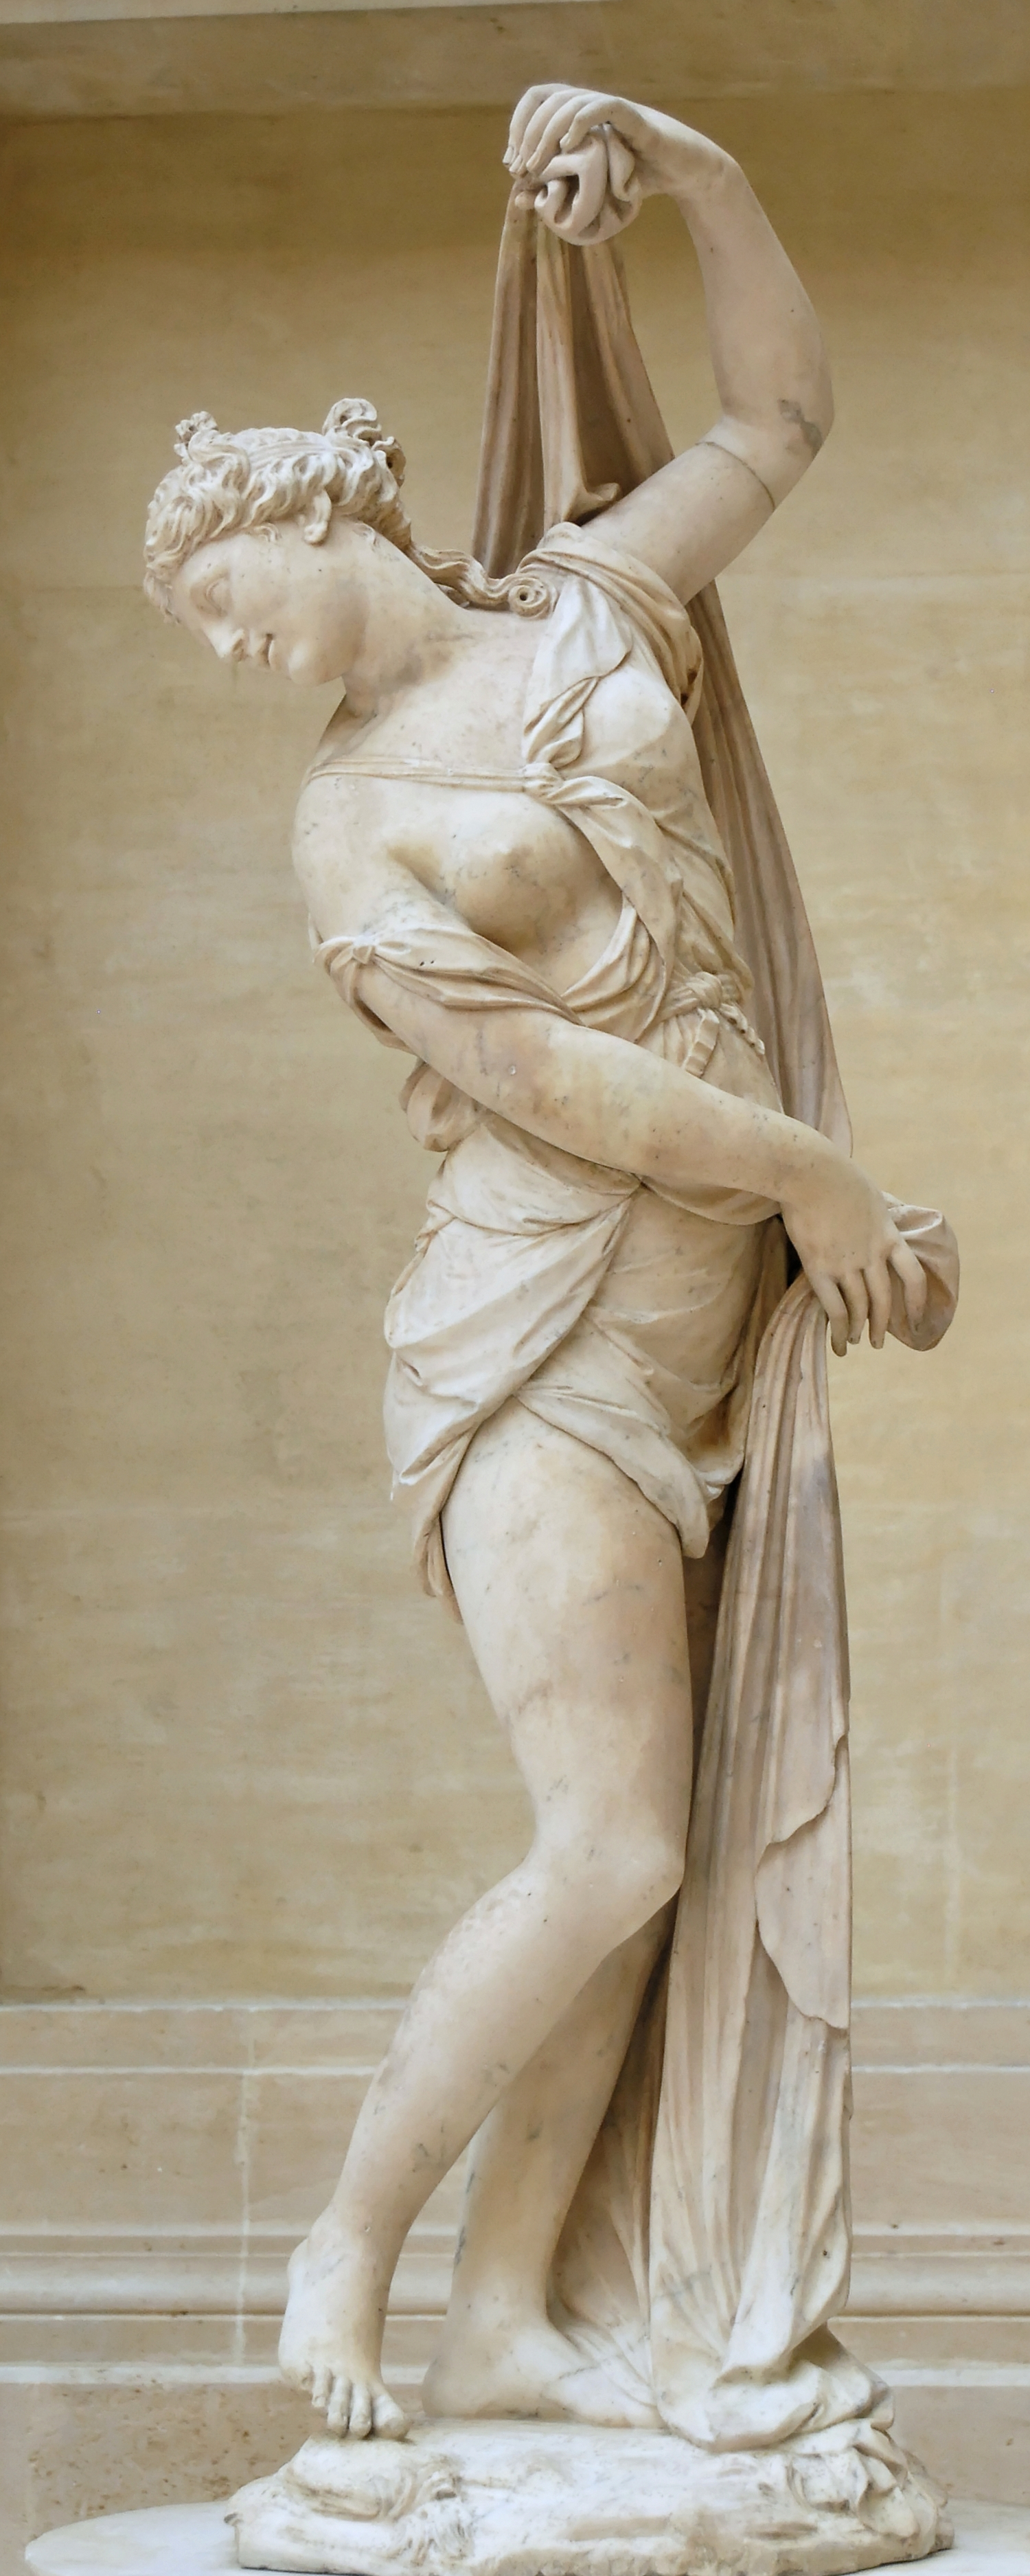 https://upload.wikimedia.org/wikipedia/commons/a/af/Callipygian_Venus_Barois_Louvre_MR1999_n3.jpg